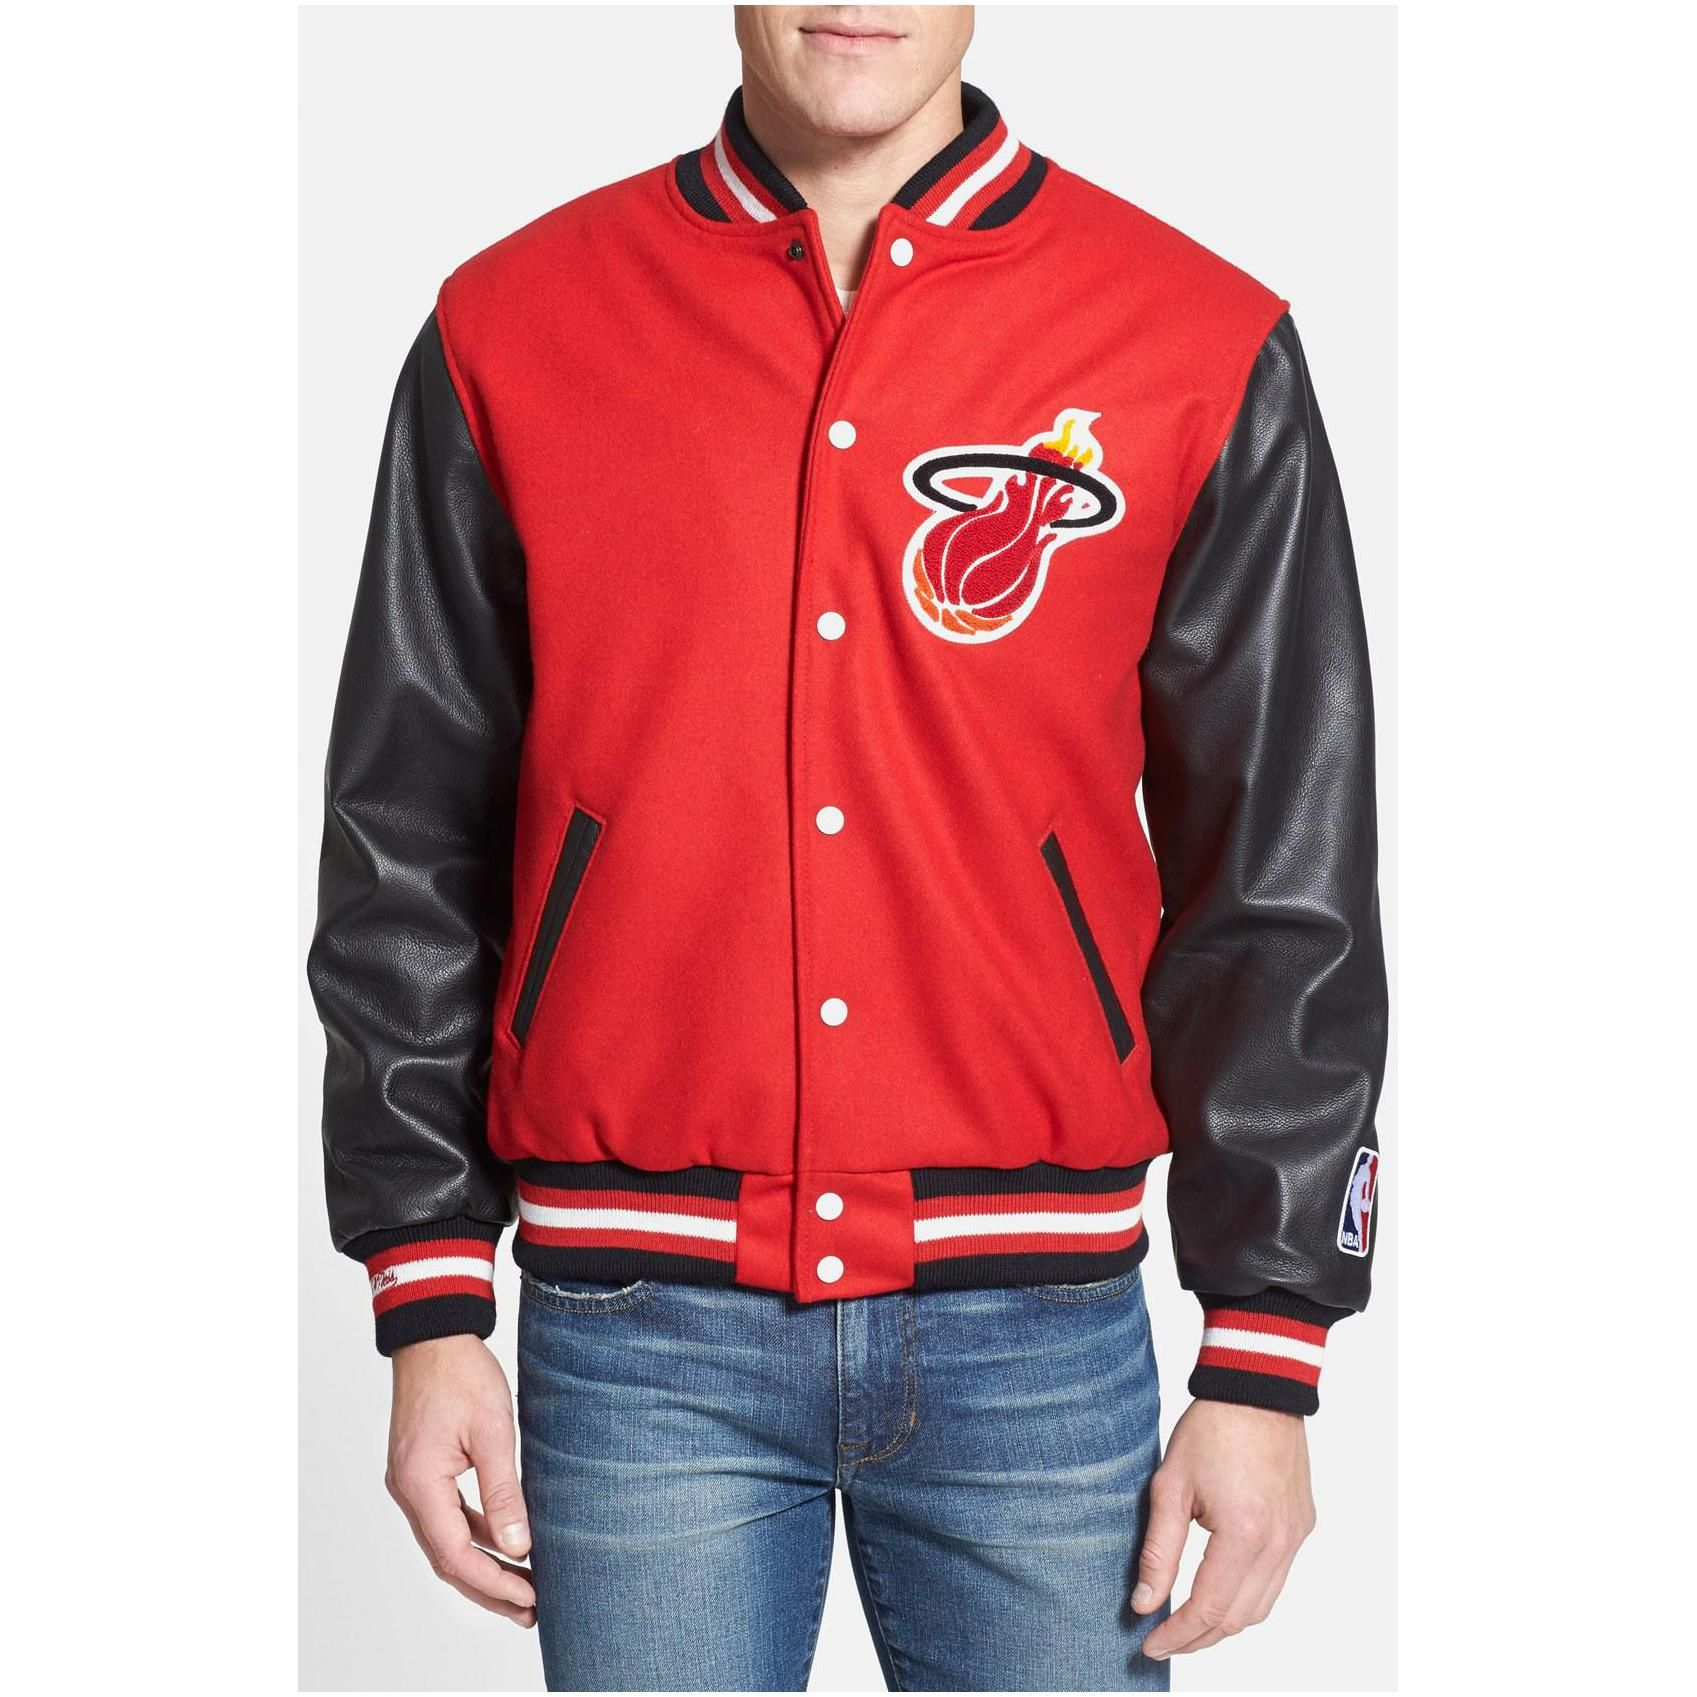 Manufacturers of High quality Custom Letterman Hooded